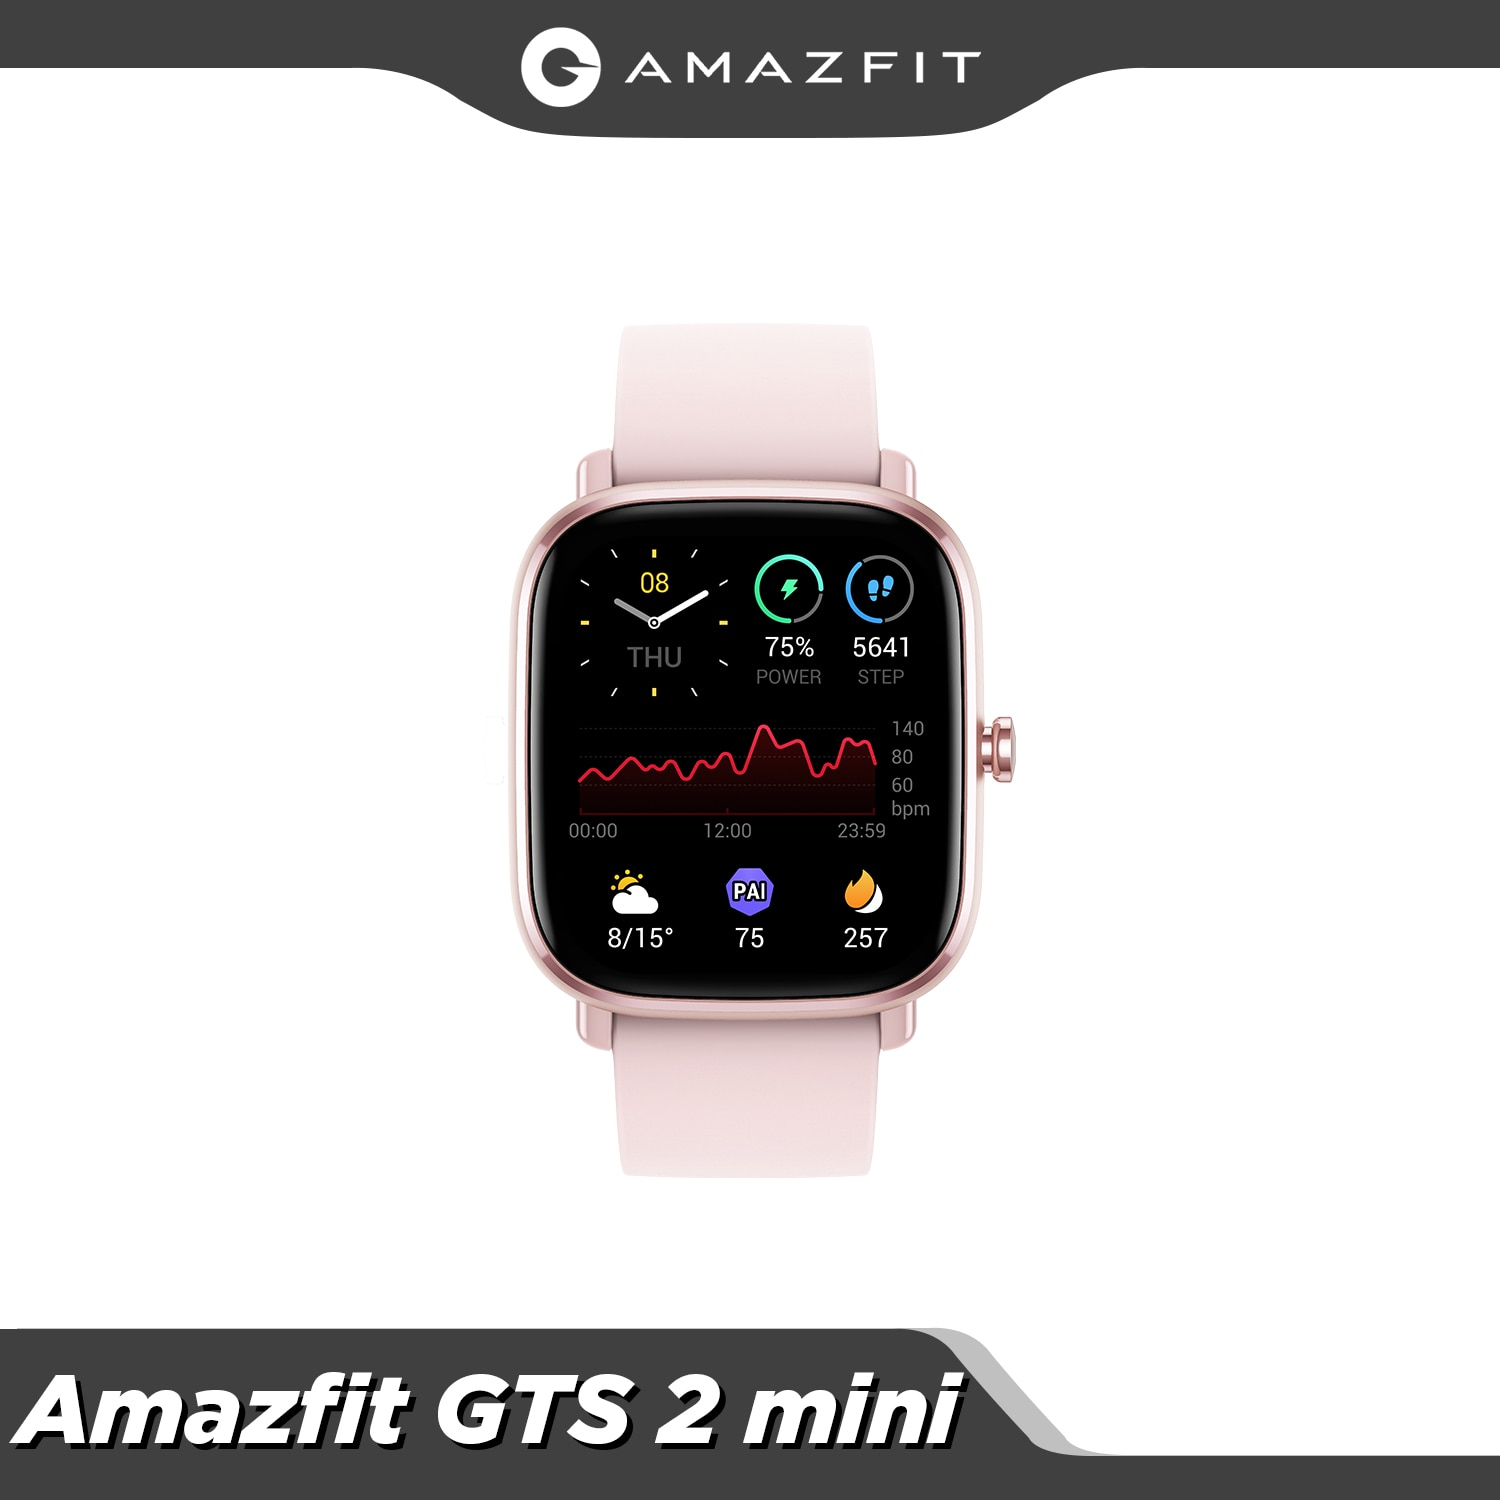 In Stock Original Amazfit GTS 2 Mini Smartwatch Bluetooth 5.0 Female Cycle Tracking 14 Days Battery Life GPS Sports For Android